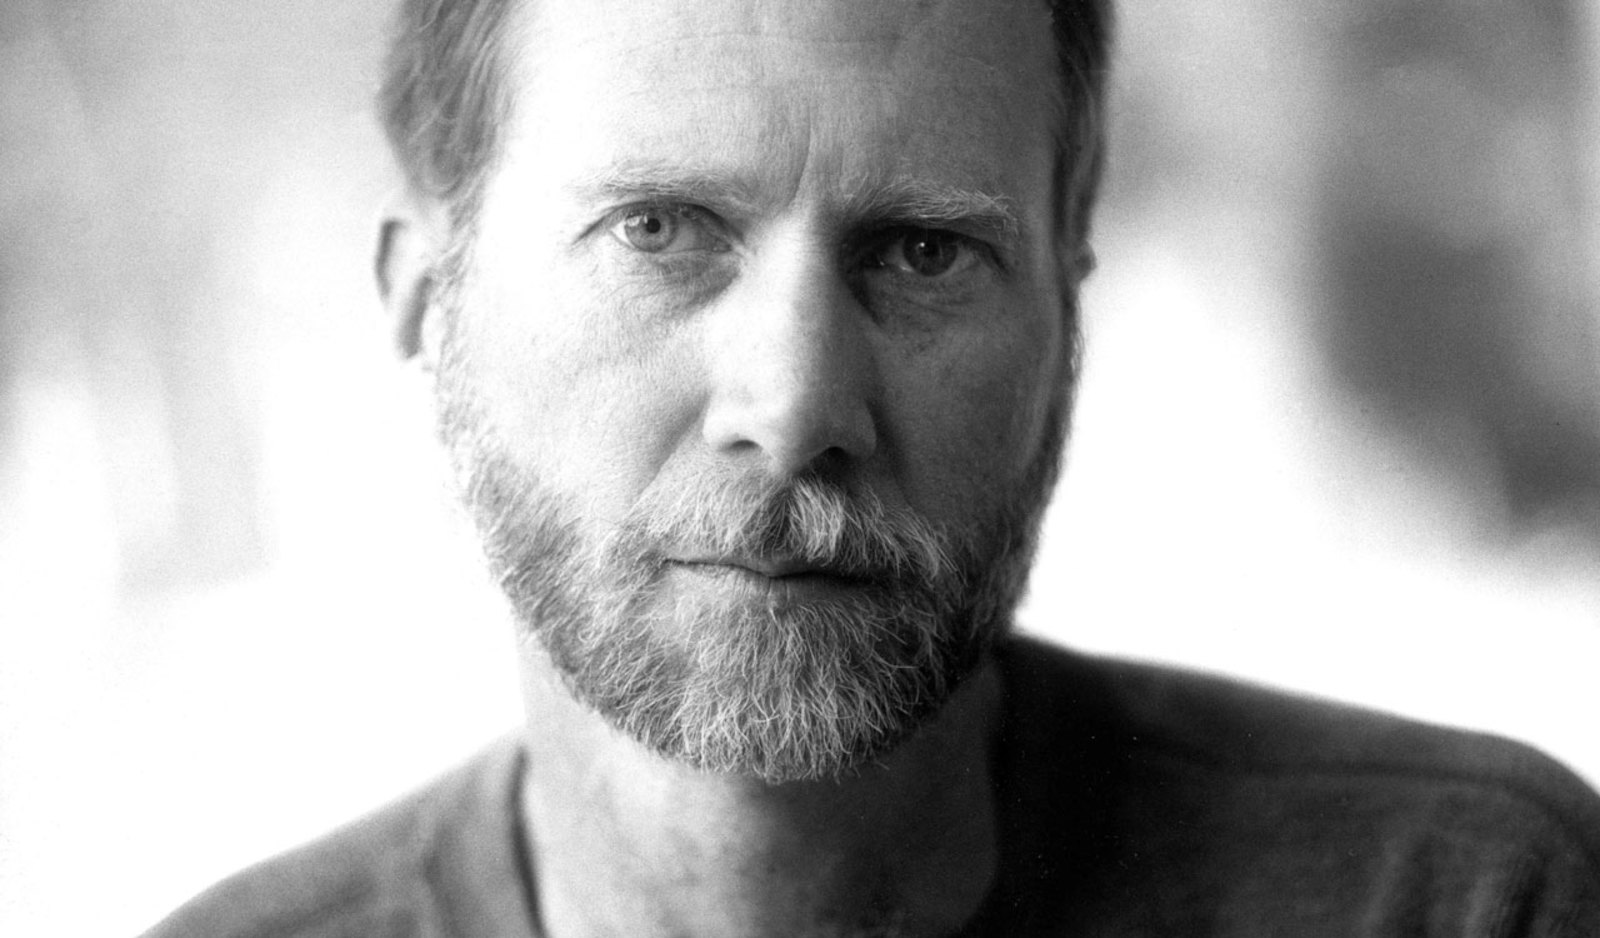 (Pictured: Composer John Luther Adams, whose world-premiere occurs on Sept 15 & 16.)